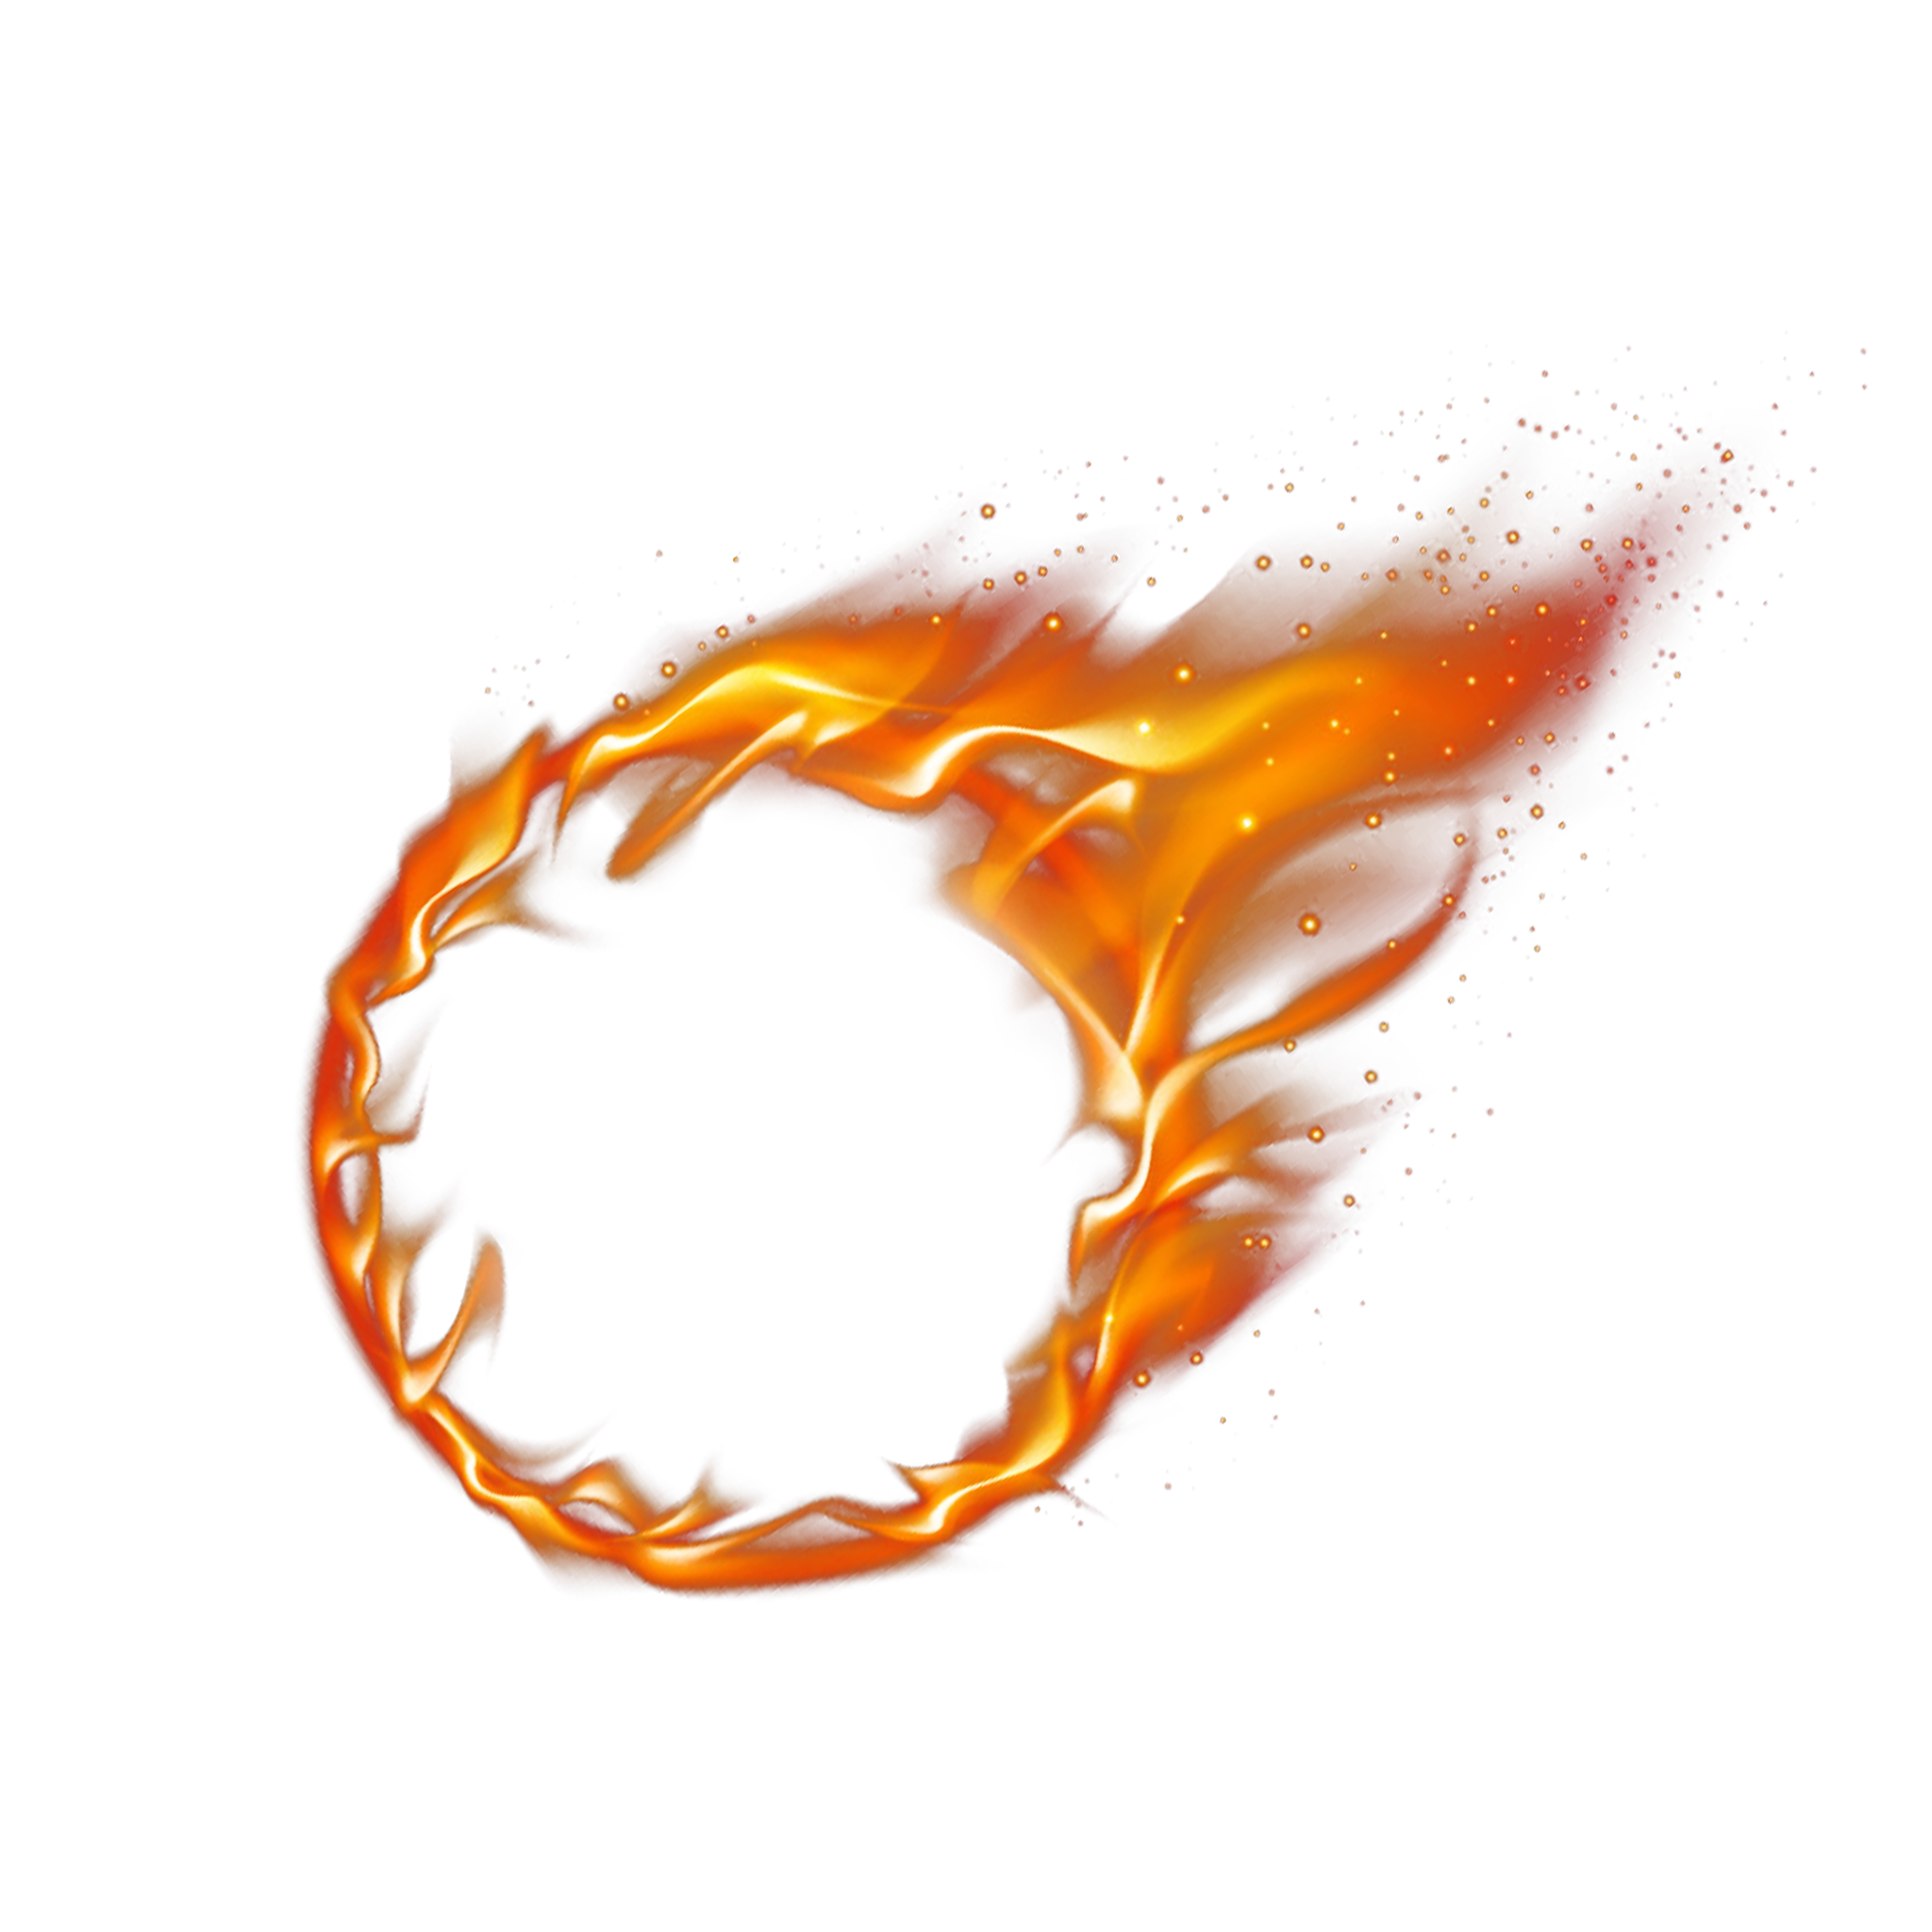 Ring of fire png. Hd image free download